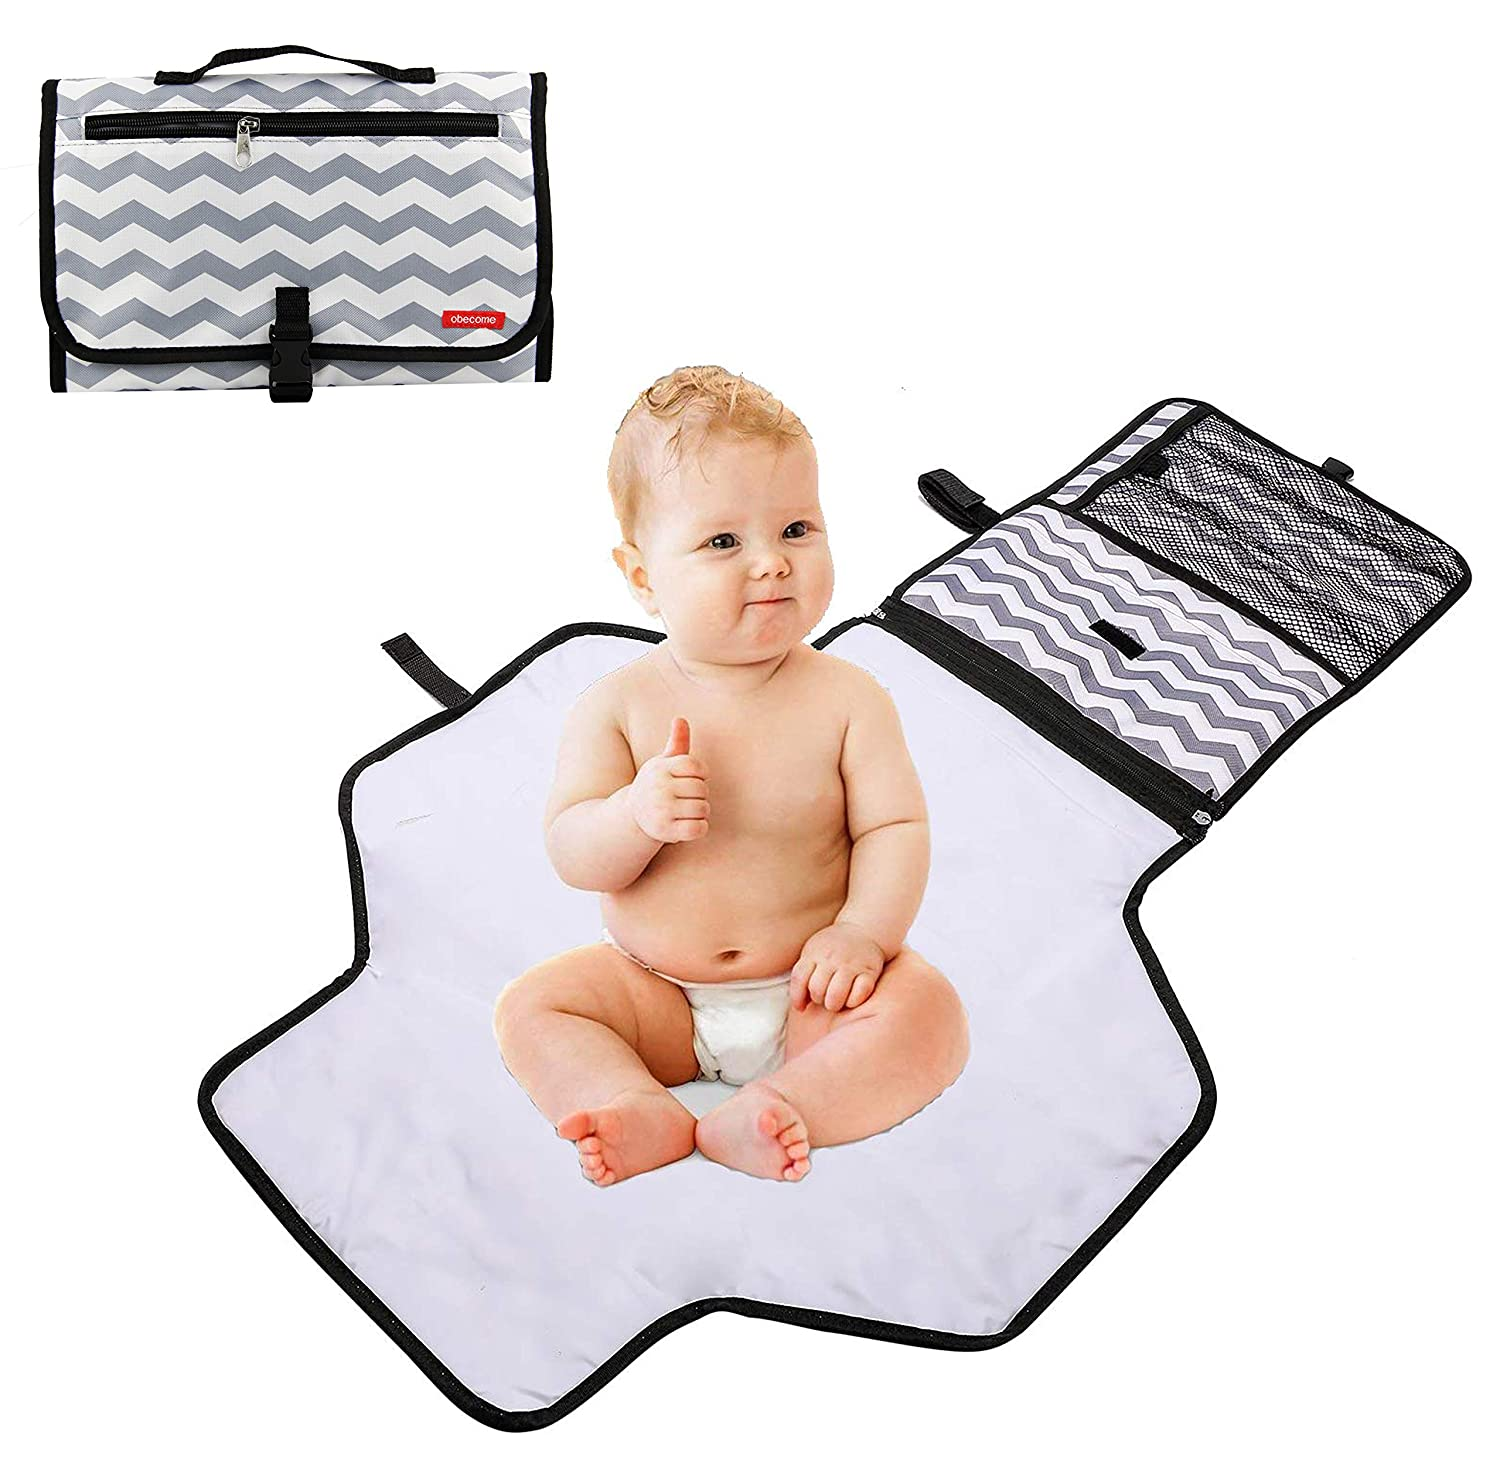 Zooawa Travel Changing Mat,waterproof Changing Diaper Pad Mat Folding Station Cheapest Price From Our Site Changing Pads & Covers